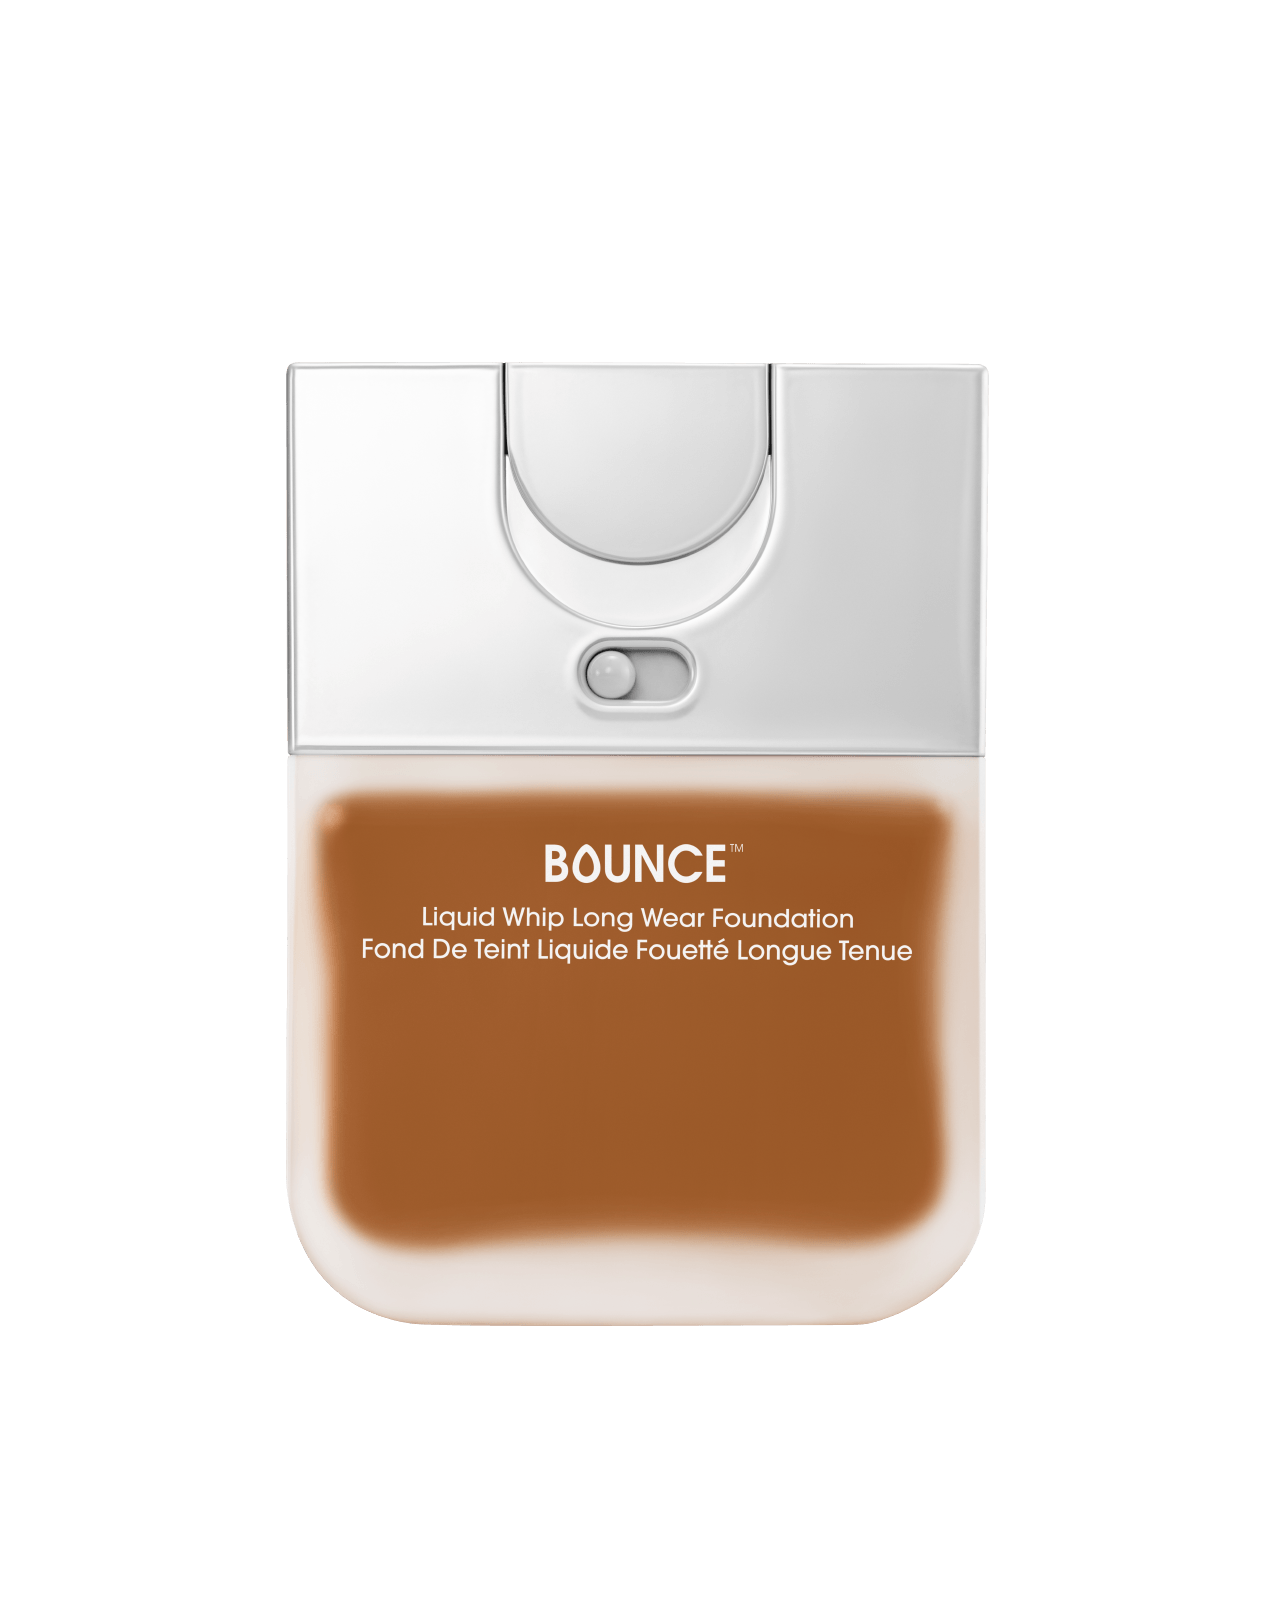 BOUNCE Liquid Foundation in shade 4.40 n